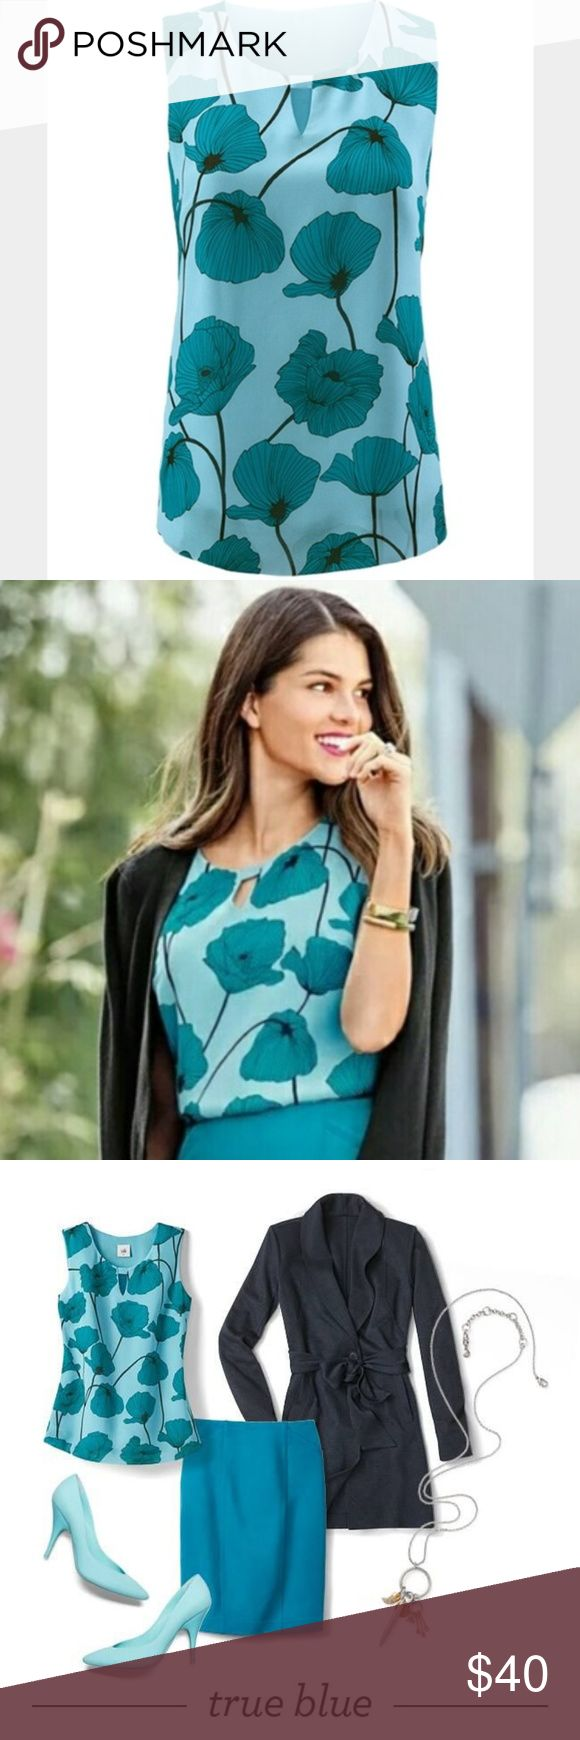 CAbi Blue Poppy Tank Keyhole Top Size XS Up for sale Cabi Poppy Tank.In cool shades of teal and cerulean, this ultra-soft tank can lean casual for daytime or romantic for evening. The Poppy Blouse features a keyhole neckline and an alluring floral print.  Sz XS CAbi Tops Blouses